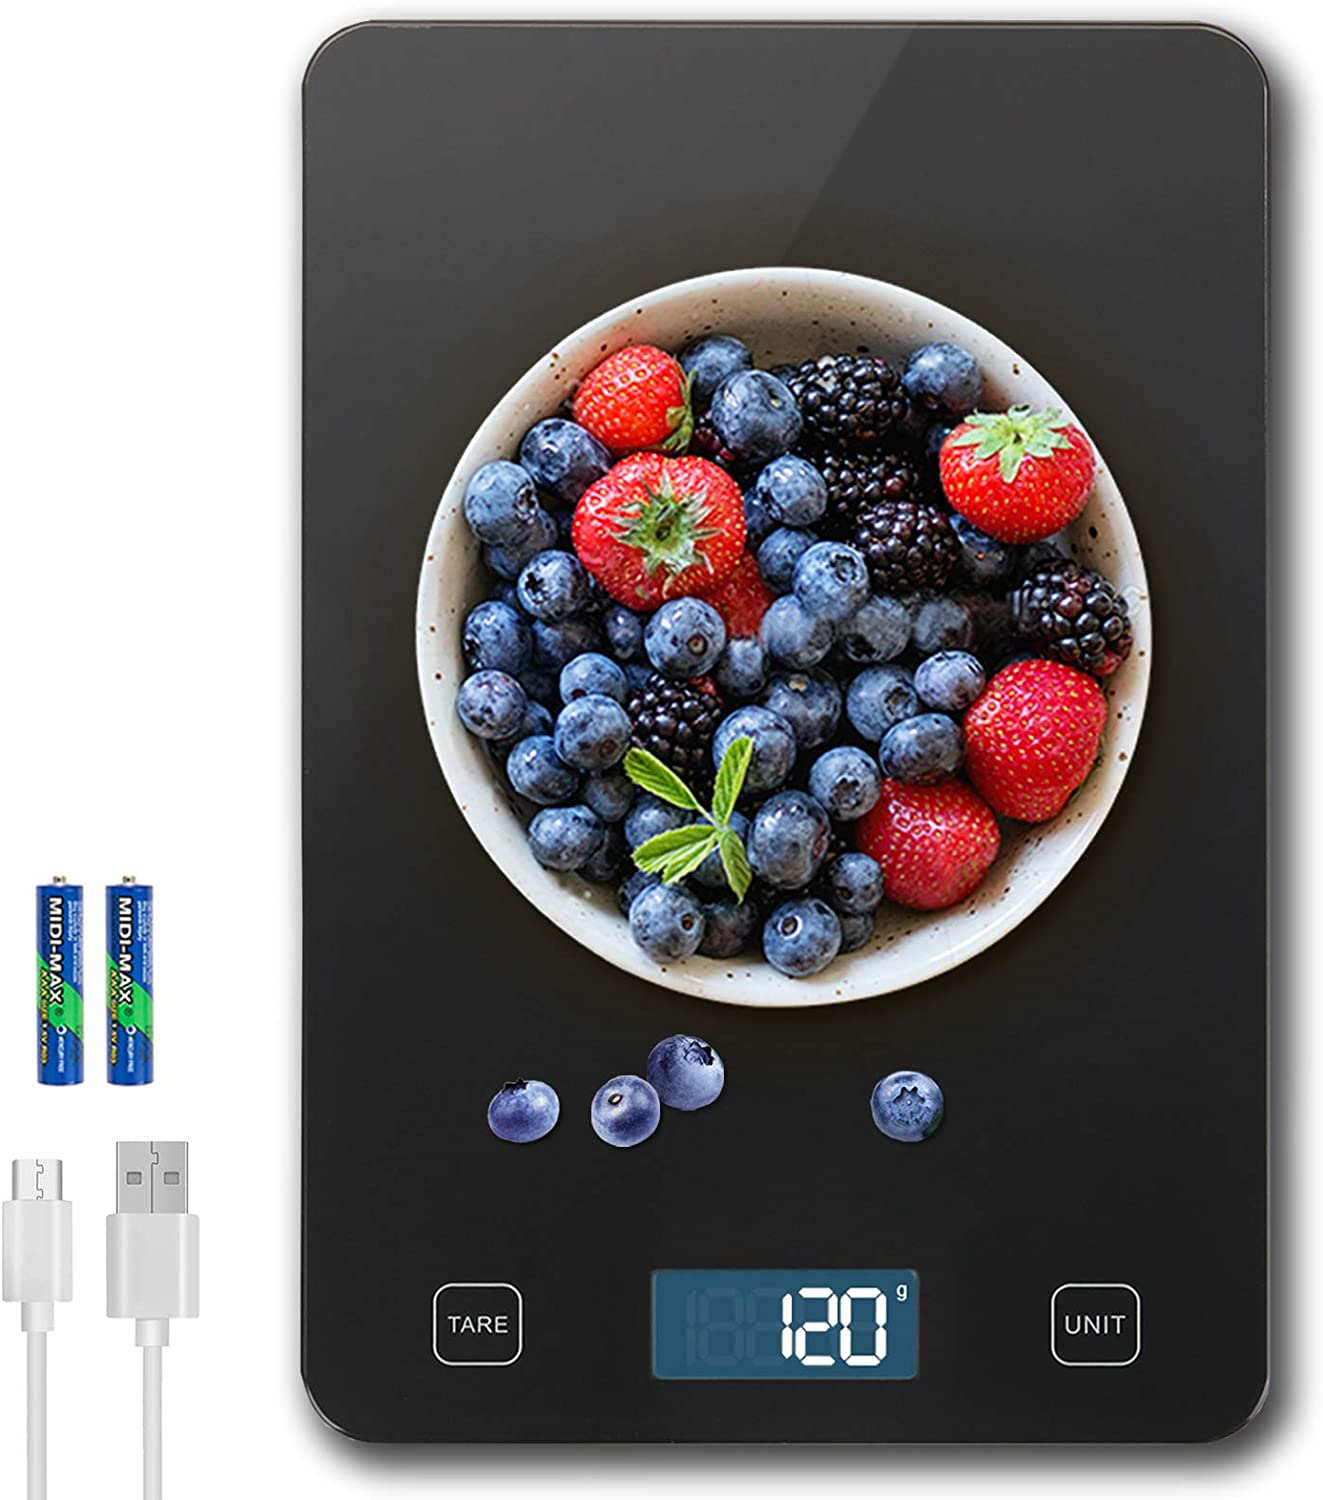 Amiloe Rechargeable Food Scale Digital Weight Grams and oz, 33lb Kitchen Scale for Cooking Baking, Waterproof Sleek Tempered Glass Platform, High Precision to 1g/0.1oz, 6 Units, 2AAA Batteries Include